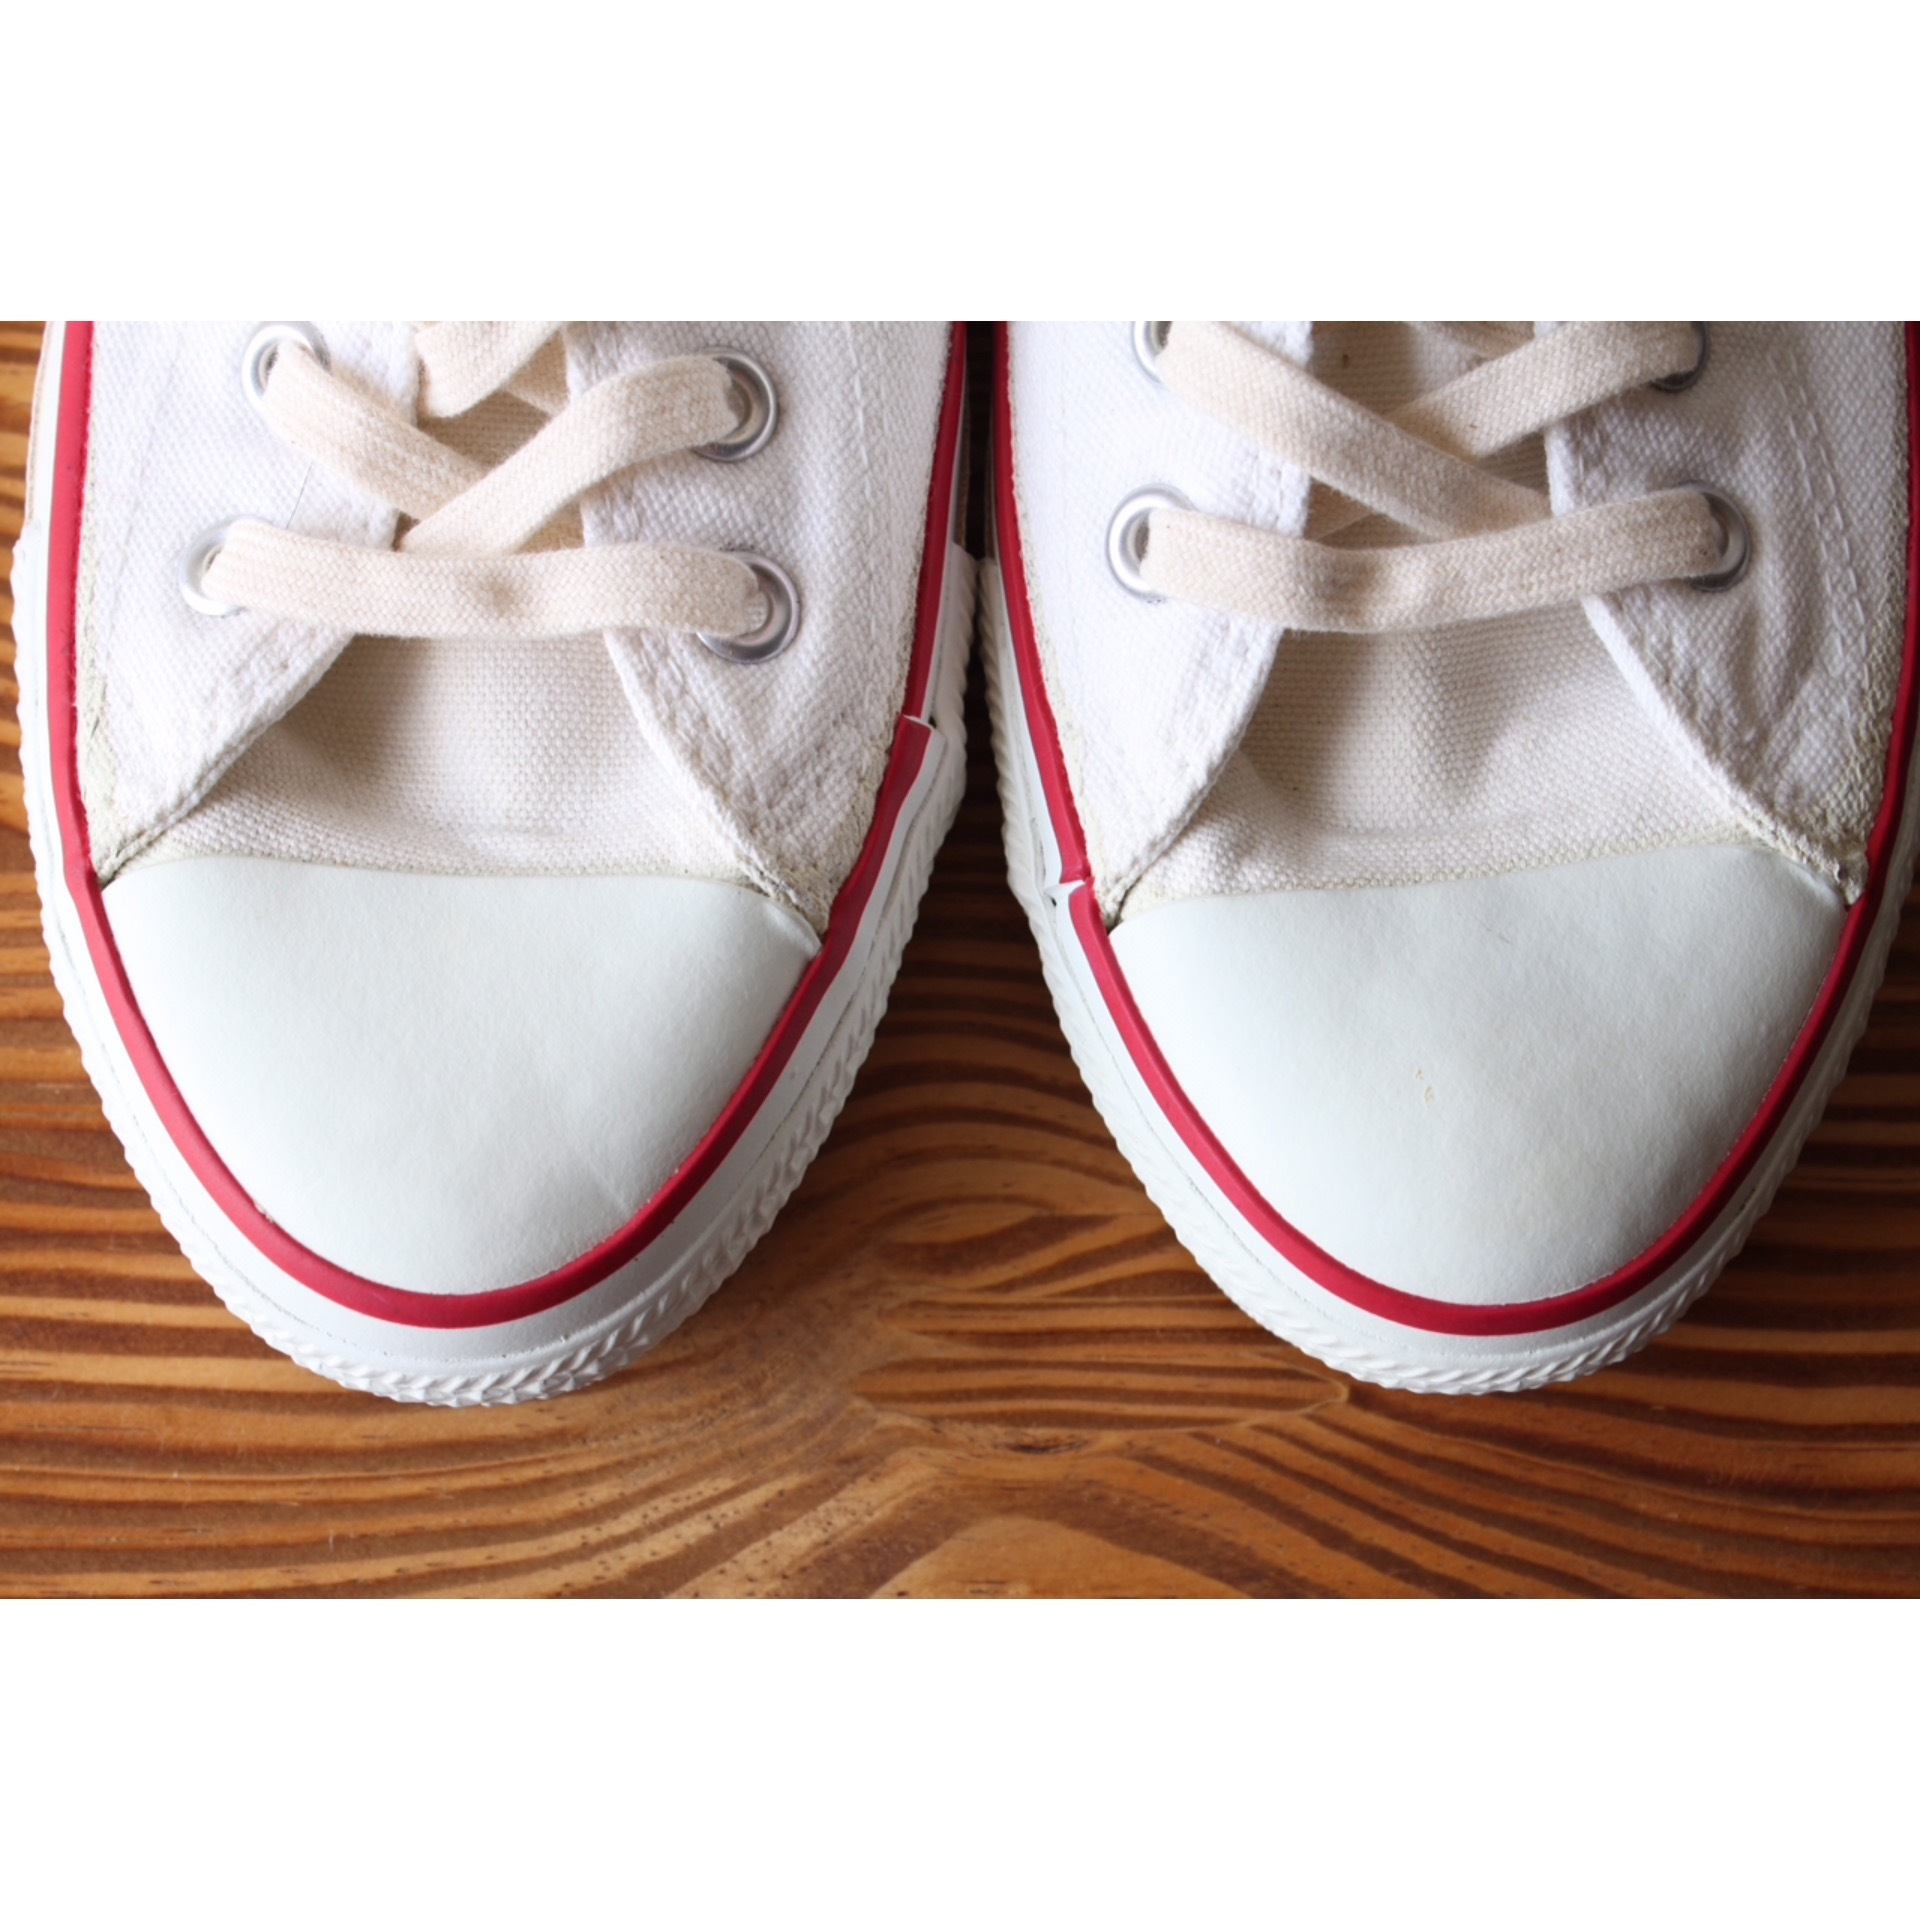 90s Converse Made in U.S.A. Size 8